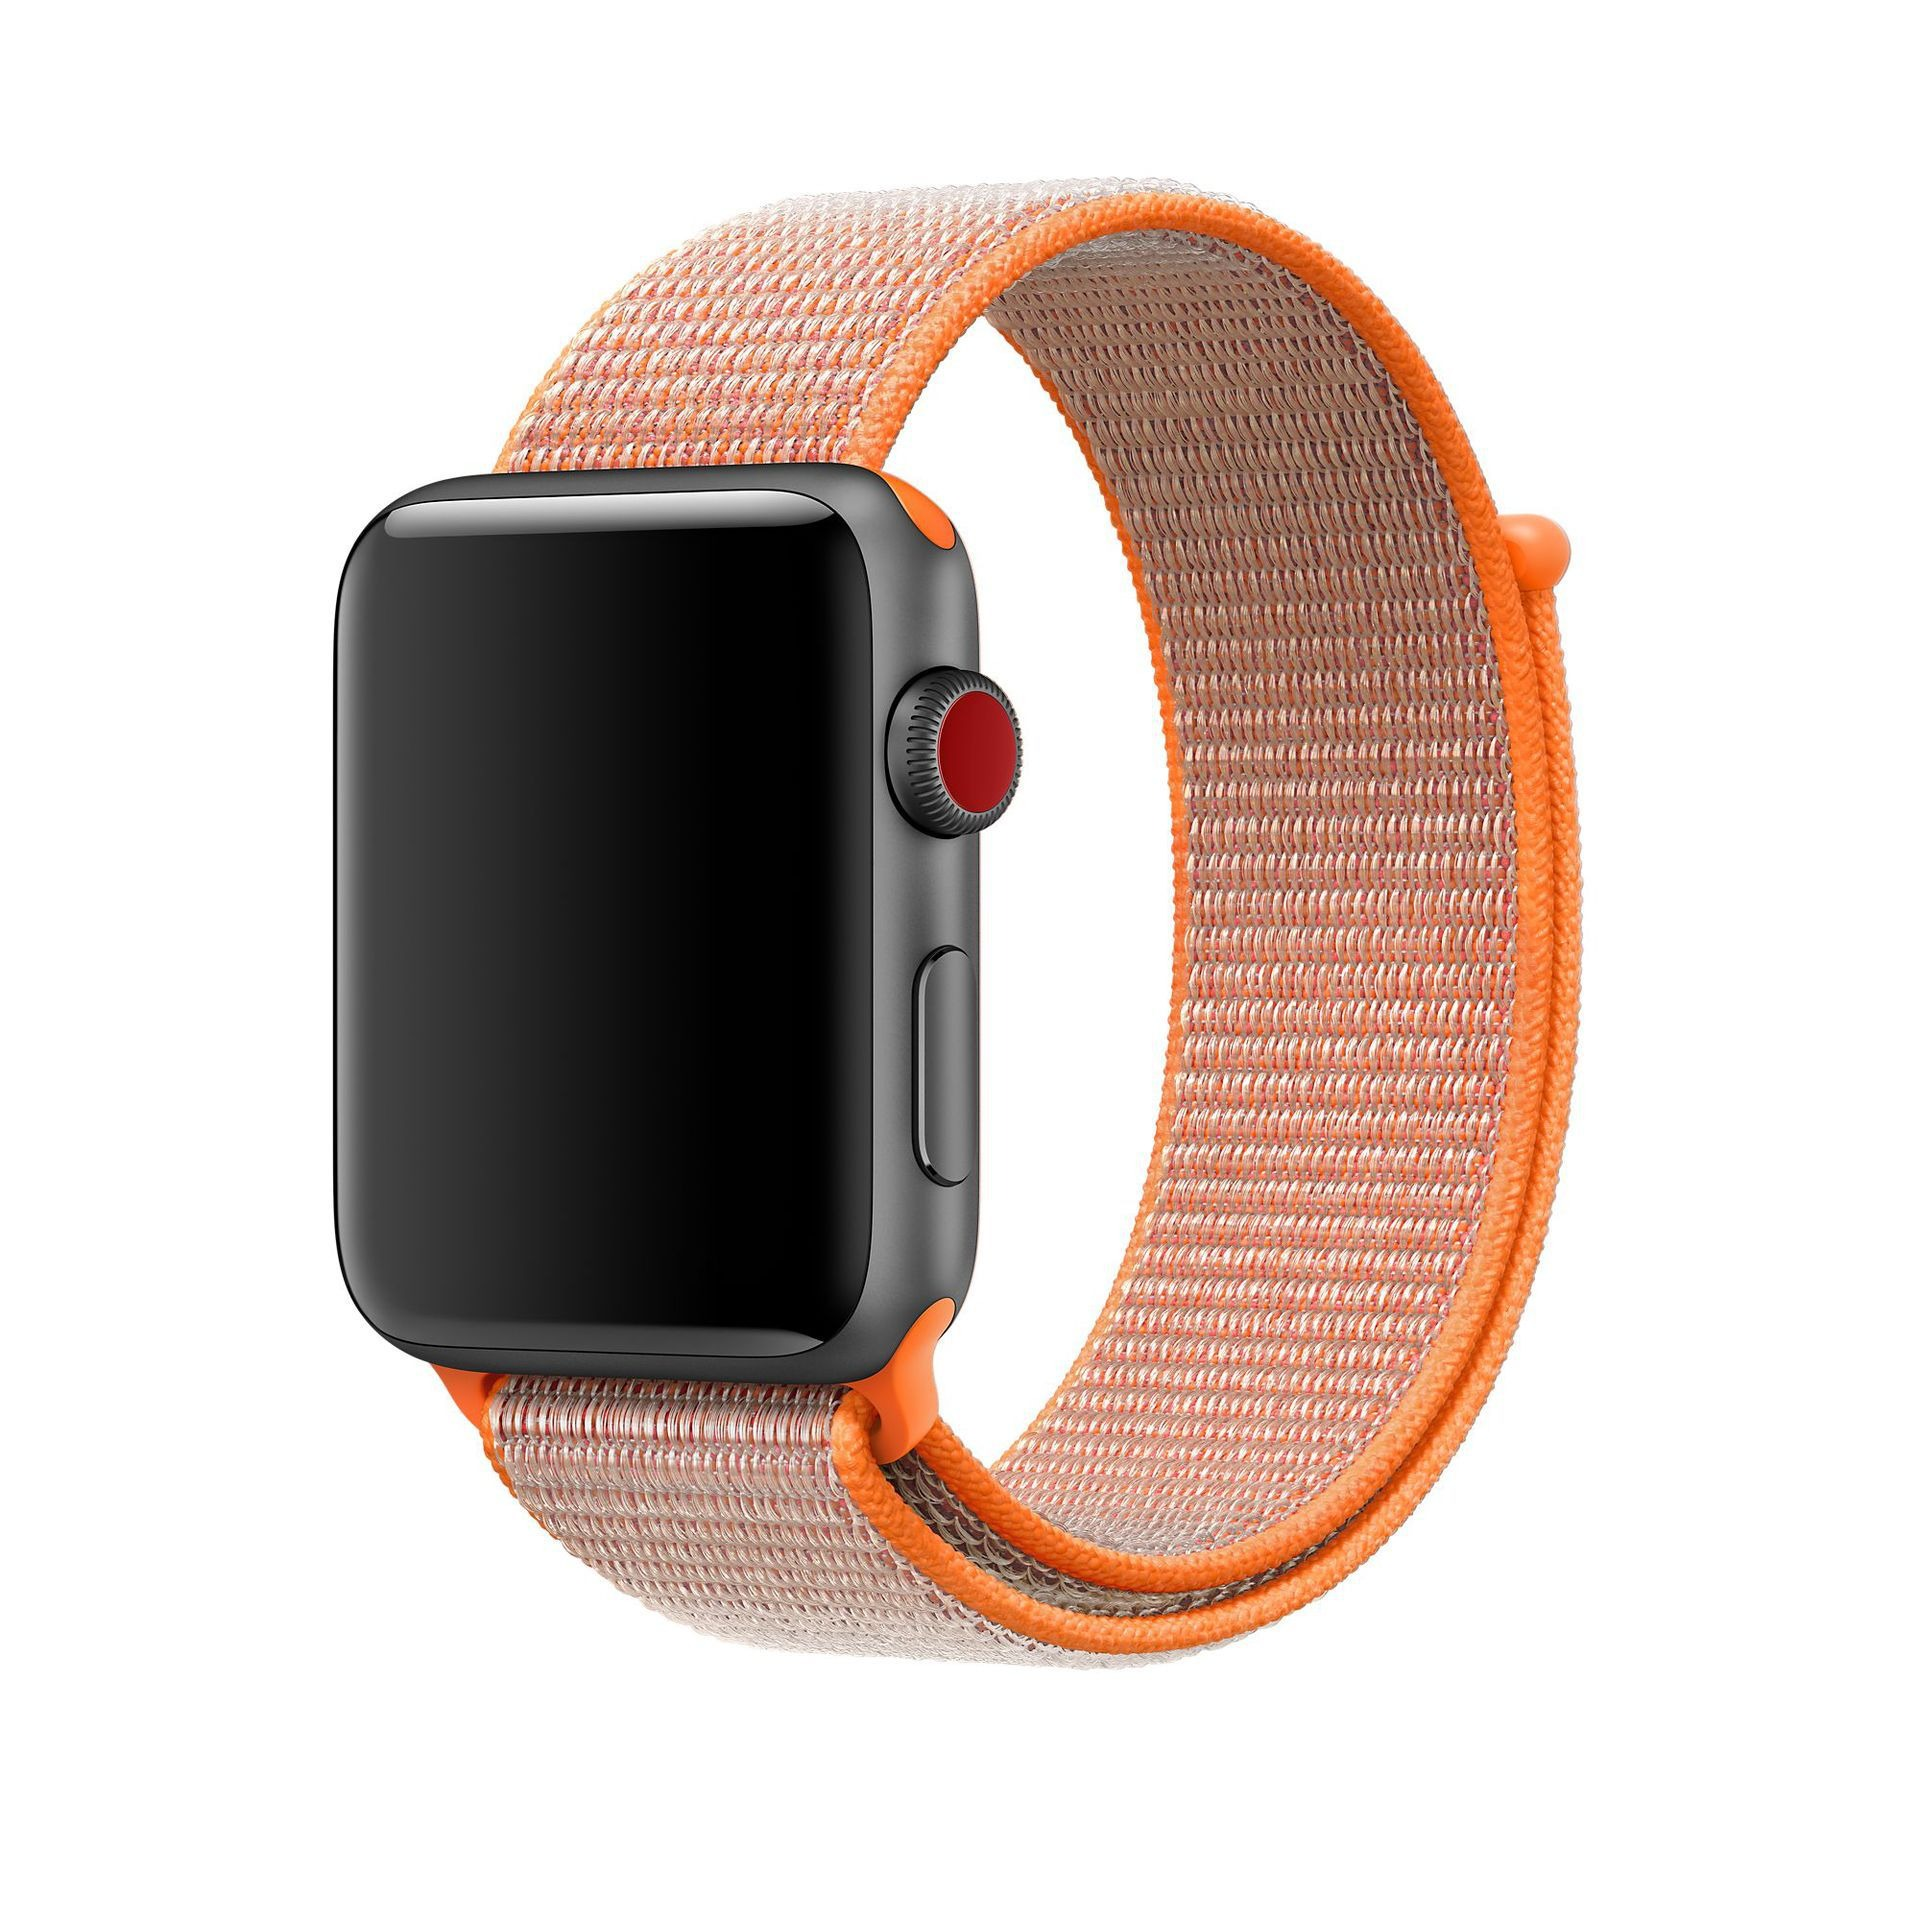 Dây Đeo Silicone Cho Đồng Hồ Đeo Tay Apple Watch